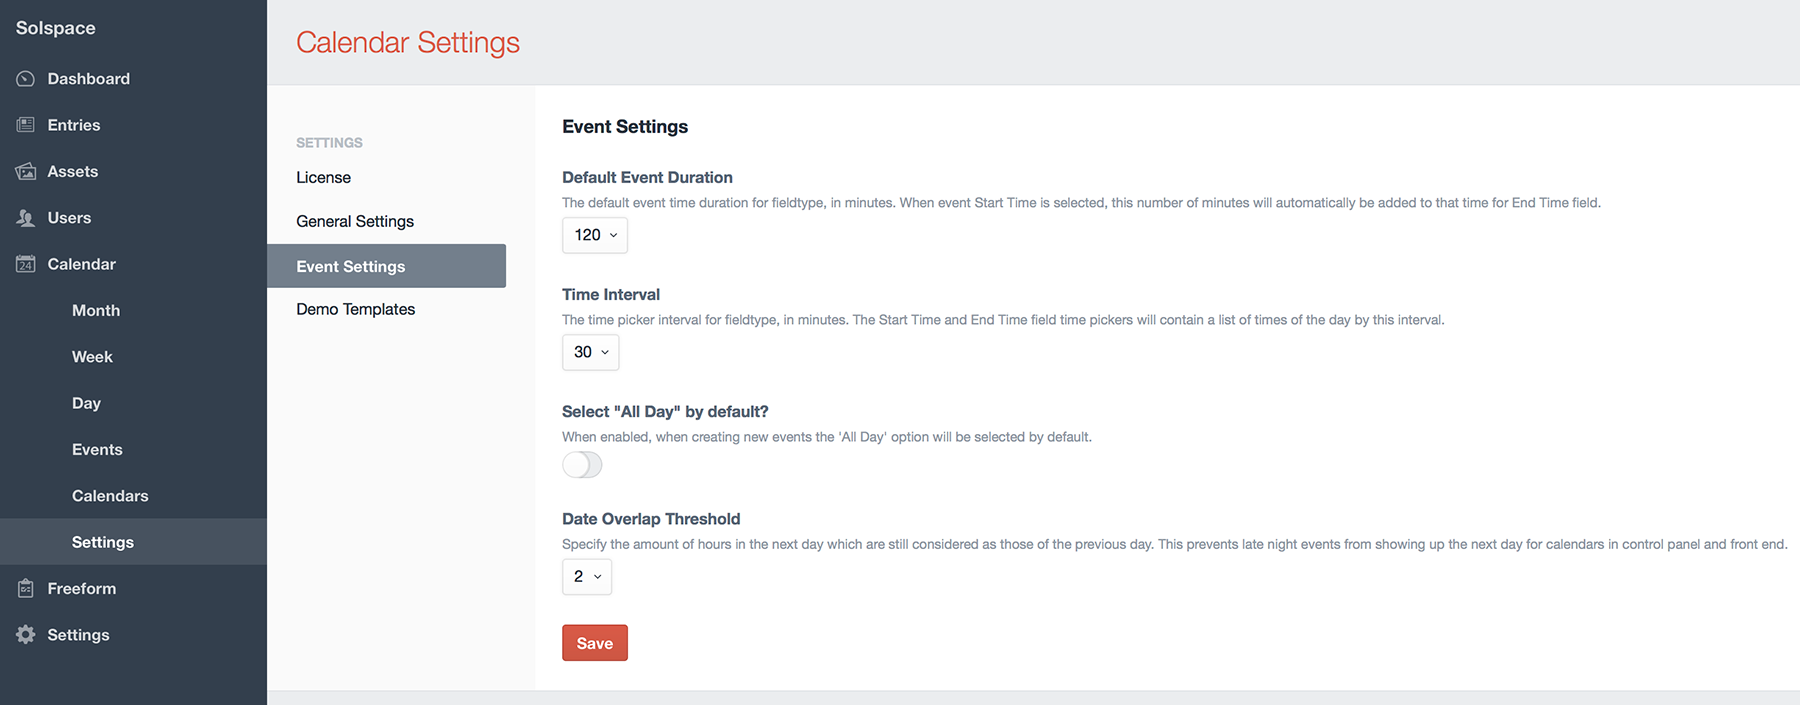 Control Panel - Event Settings